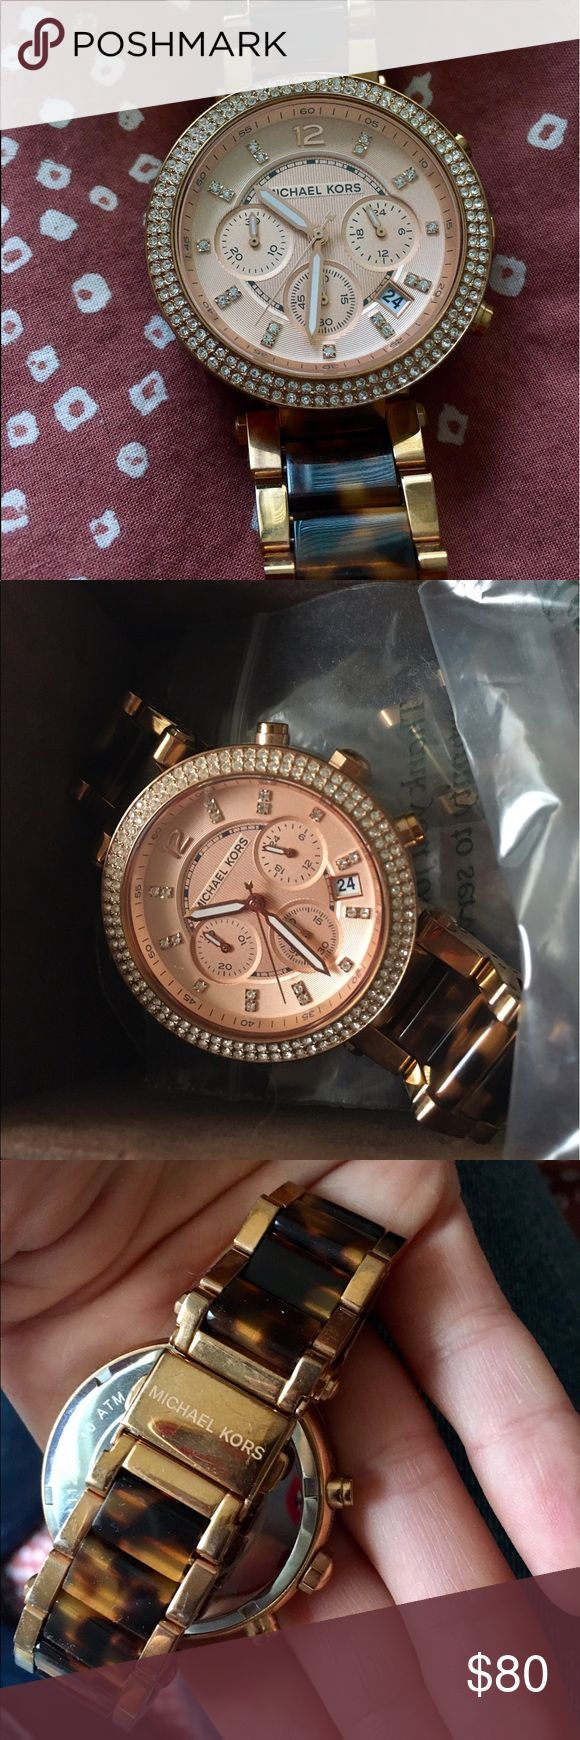 Michael Kors Rose Gold & Tortoise Shell Watch Beautiful Michael Kors watch with rose gold finish and crystals surrounding the face. This watched is practically new, and was worn less than 5 times. It comes in the original box with extra links. Great condition, no scratches Michael Kors Accessories Watches